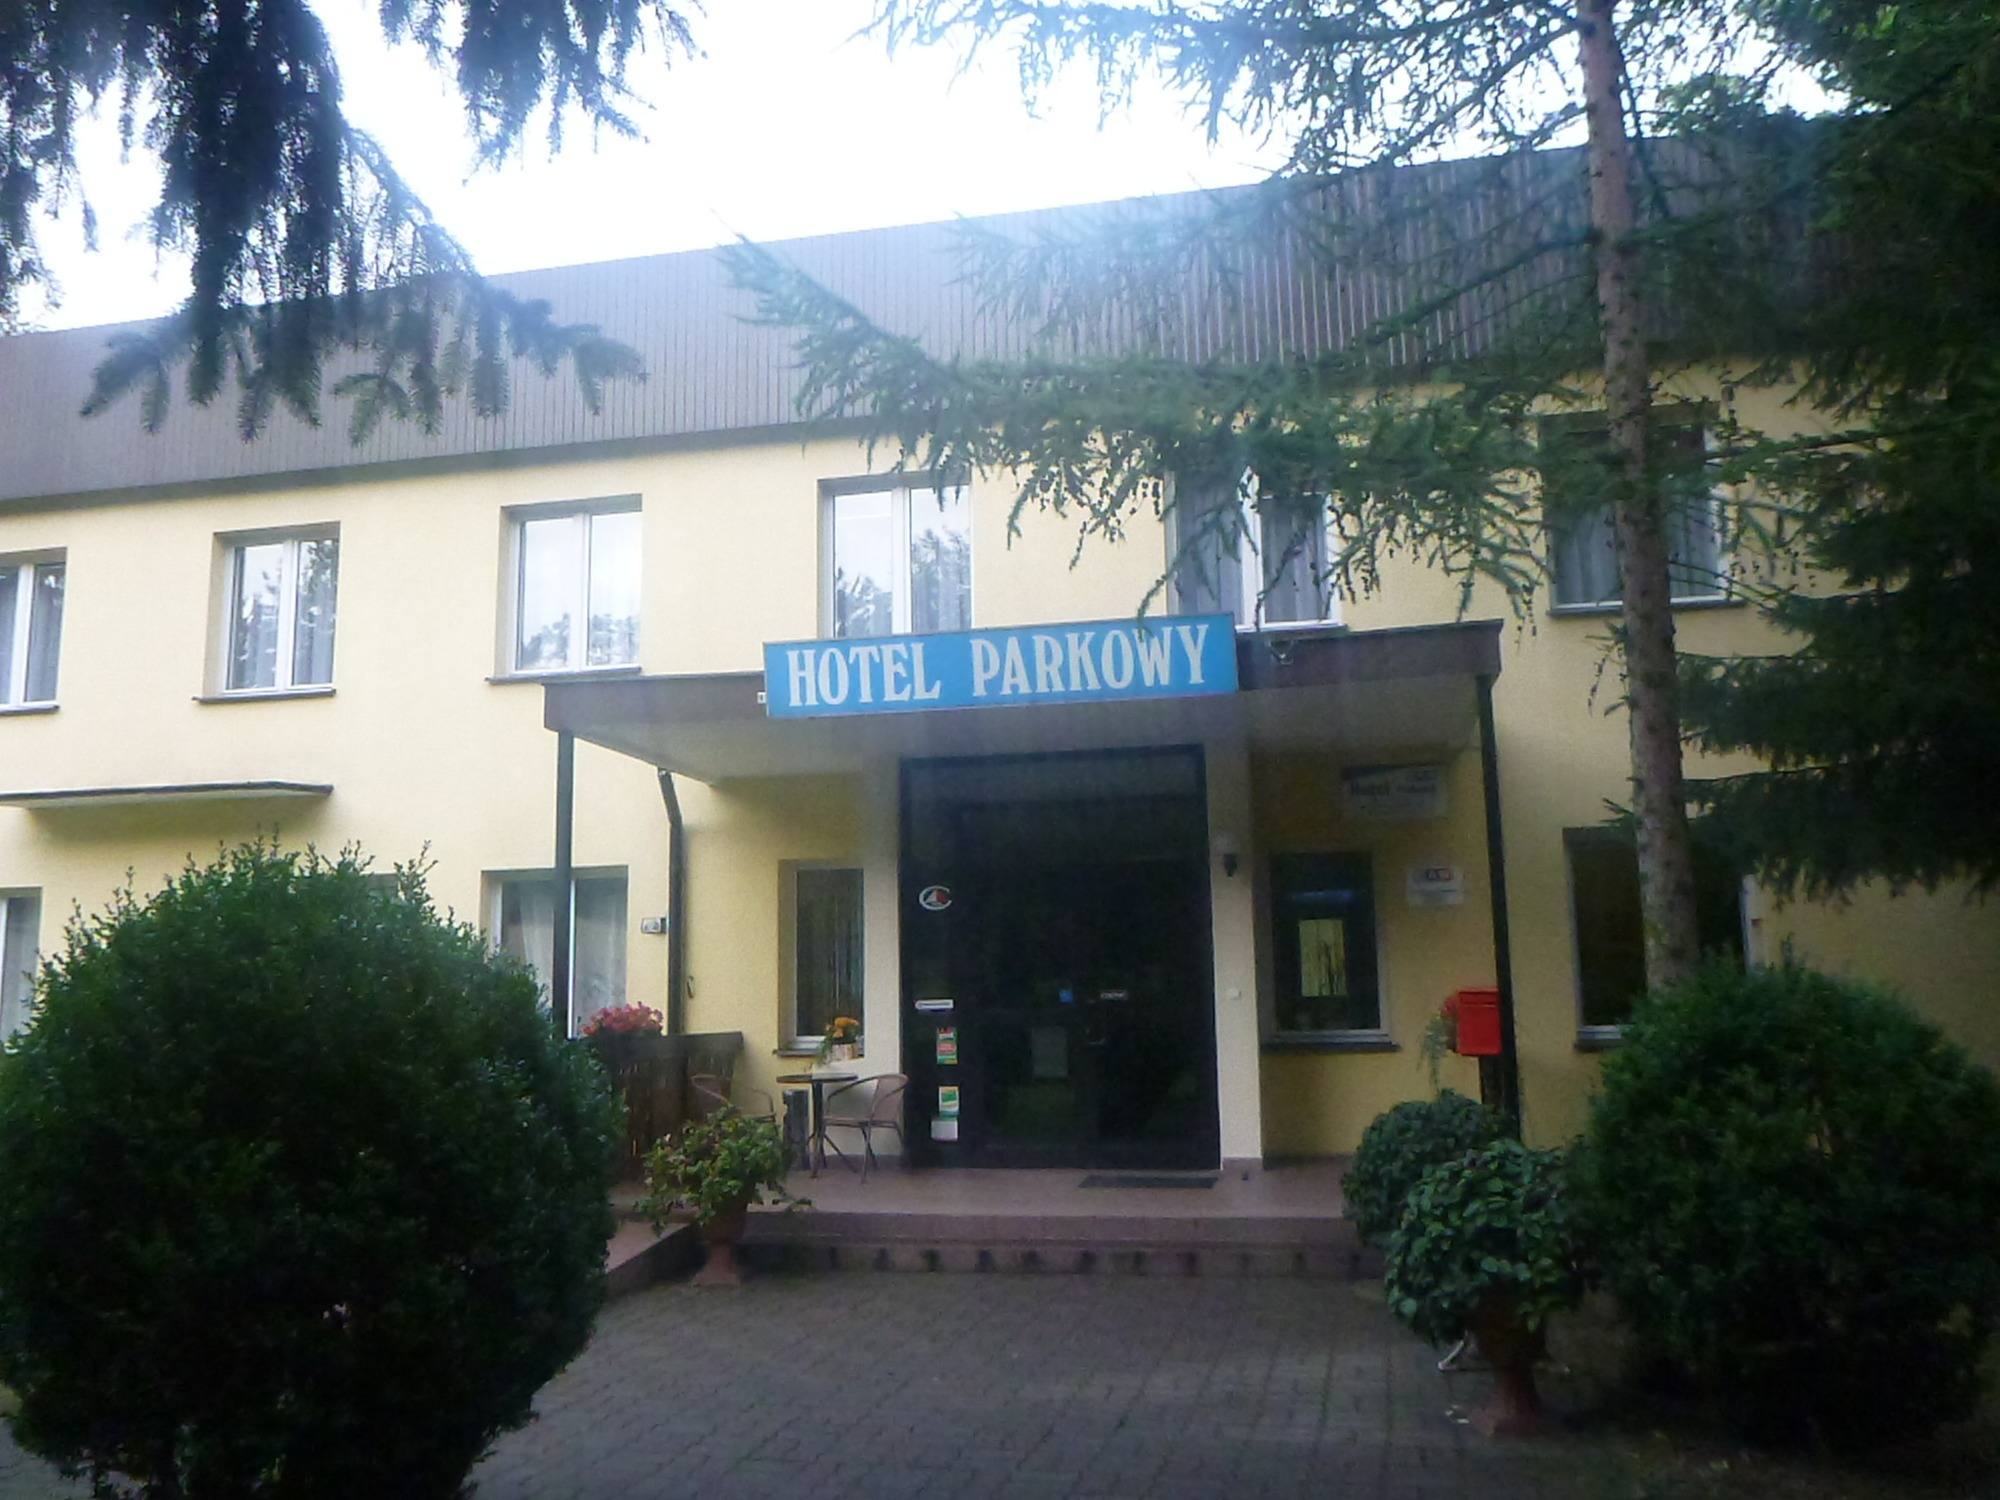 Staying at the Hotel Parkowy in Malbork, Poland